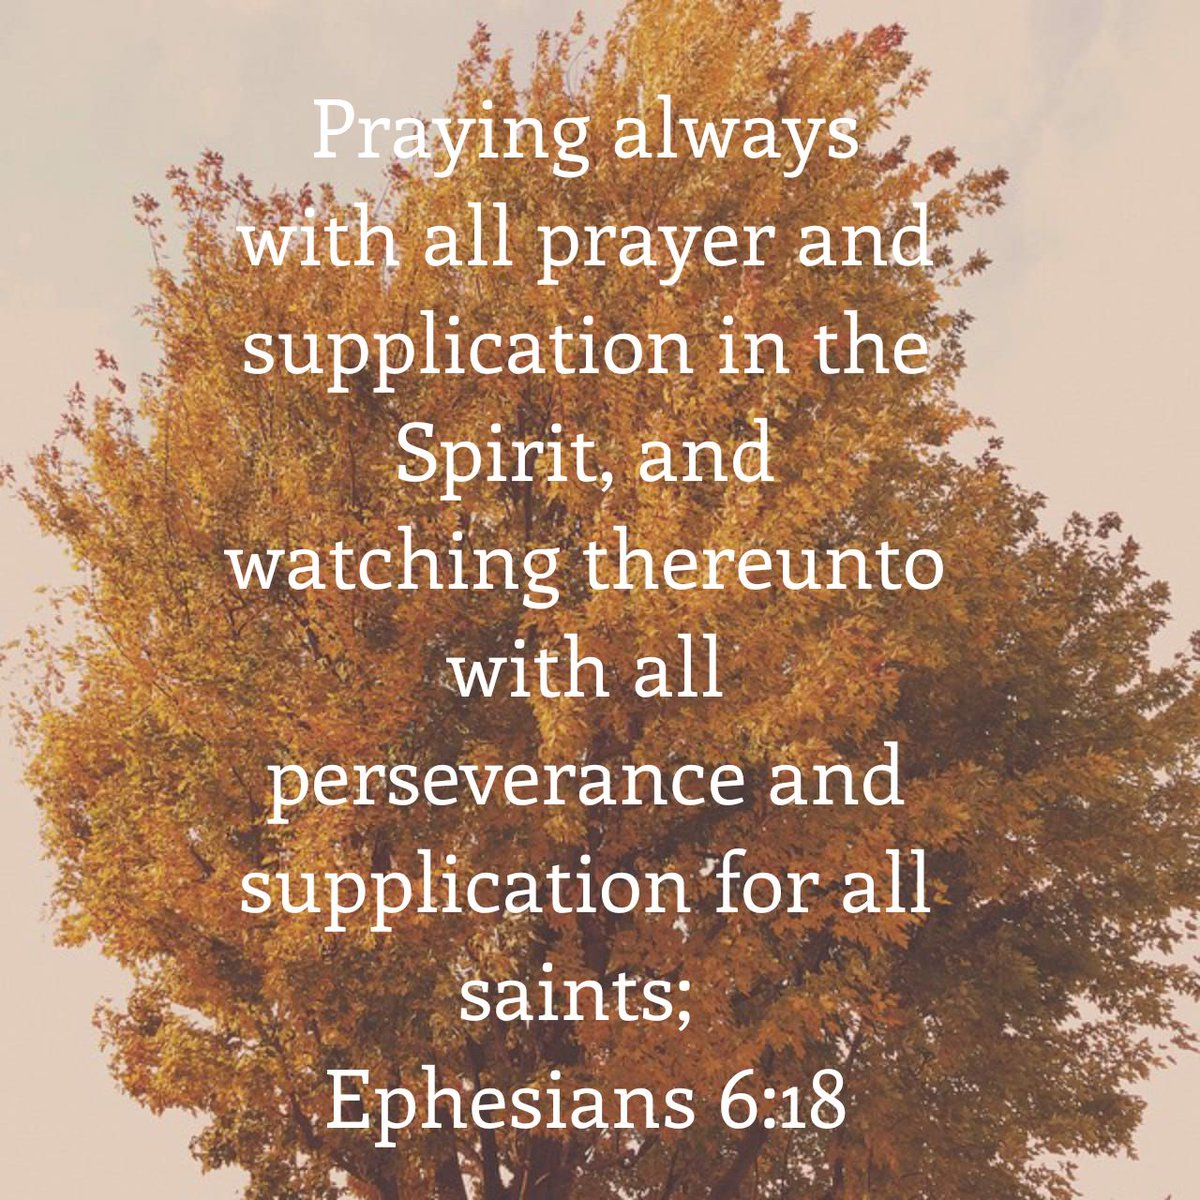 Praying always with all prayer and supplication in the Spirit, and watching thereunto with all perseverance and supplication for all saints; Ephesians 6:18 KJV